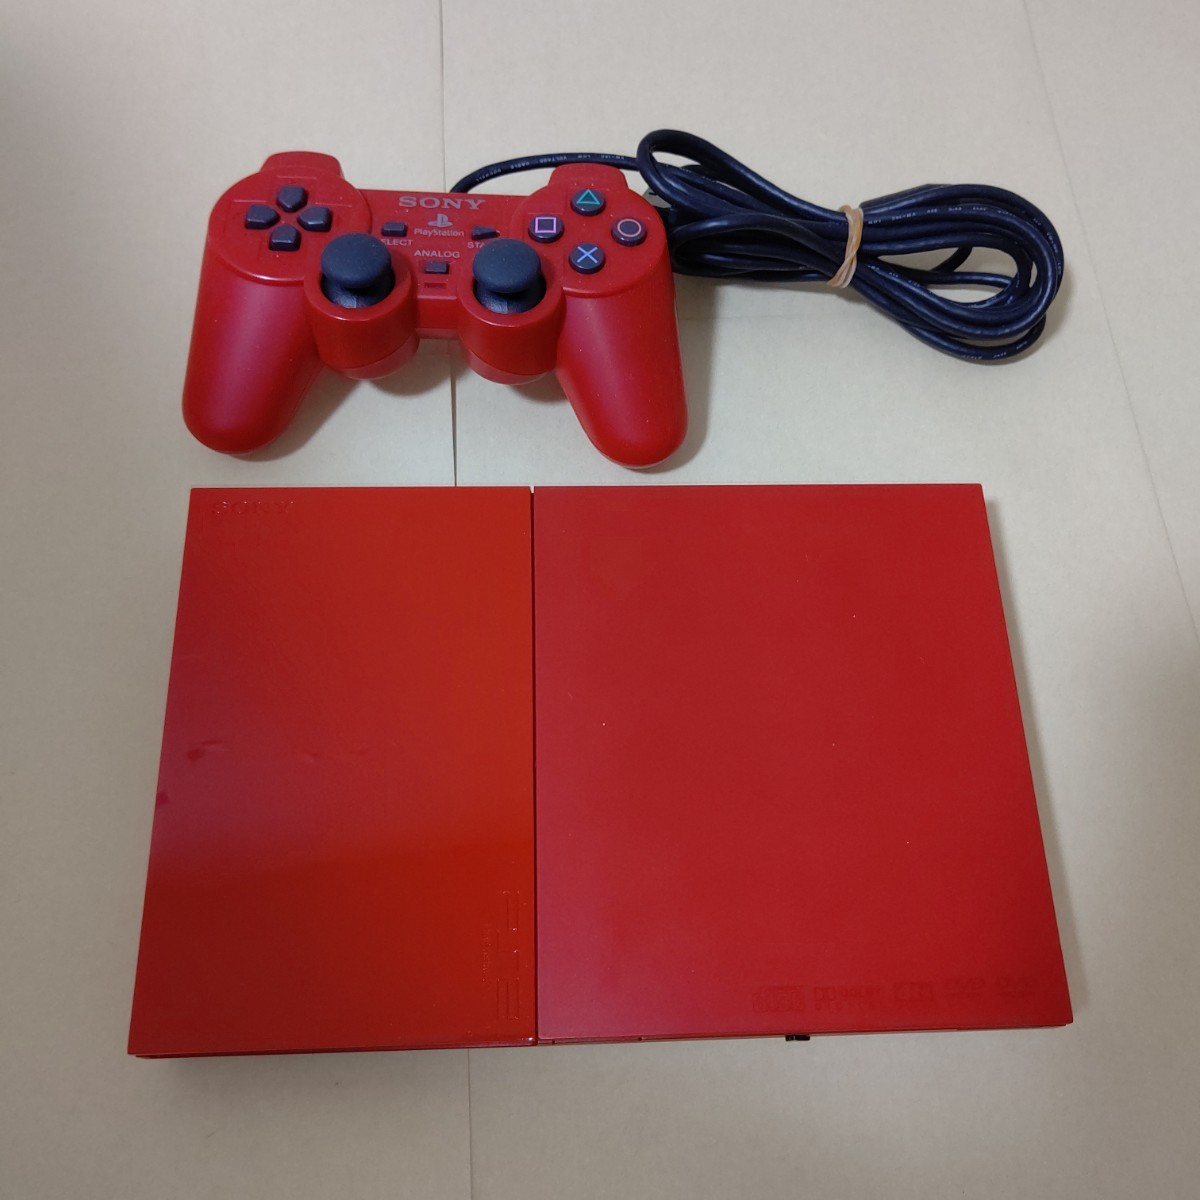 PlayStation 2 本体 シナバー・レッド SCPH-90000CR PS2